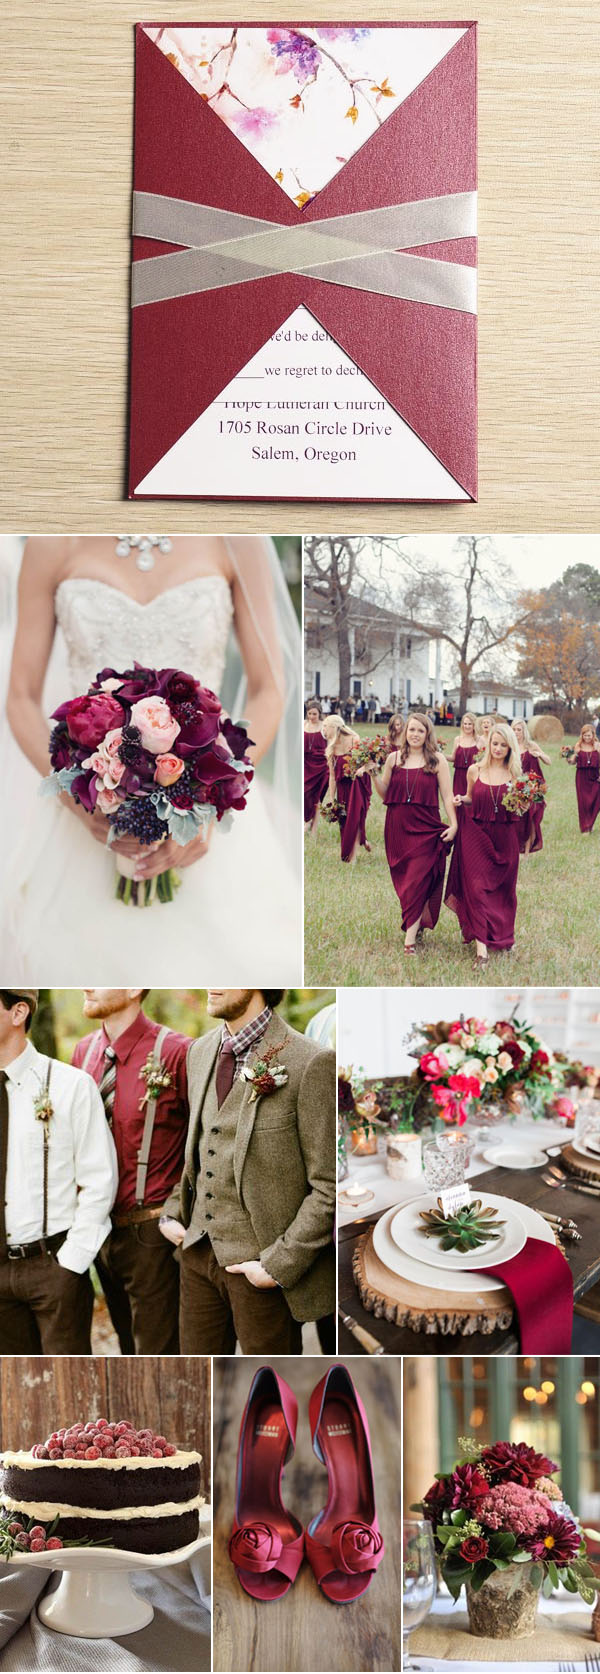 wine red fall wedding color ideas with gorgeous rustic invitations